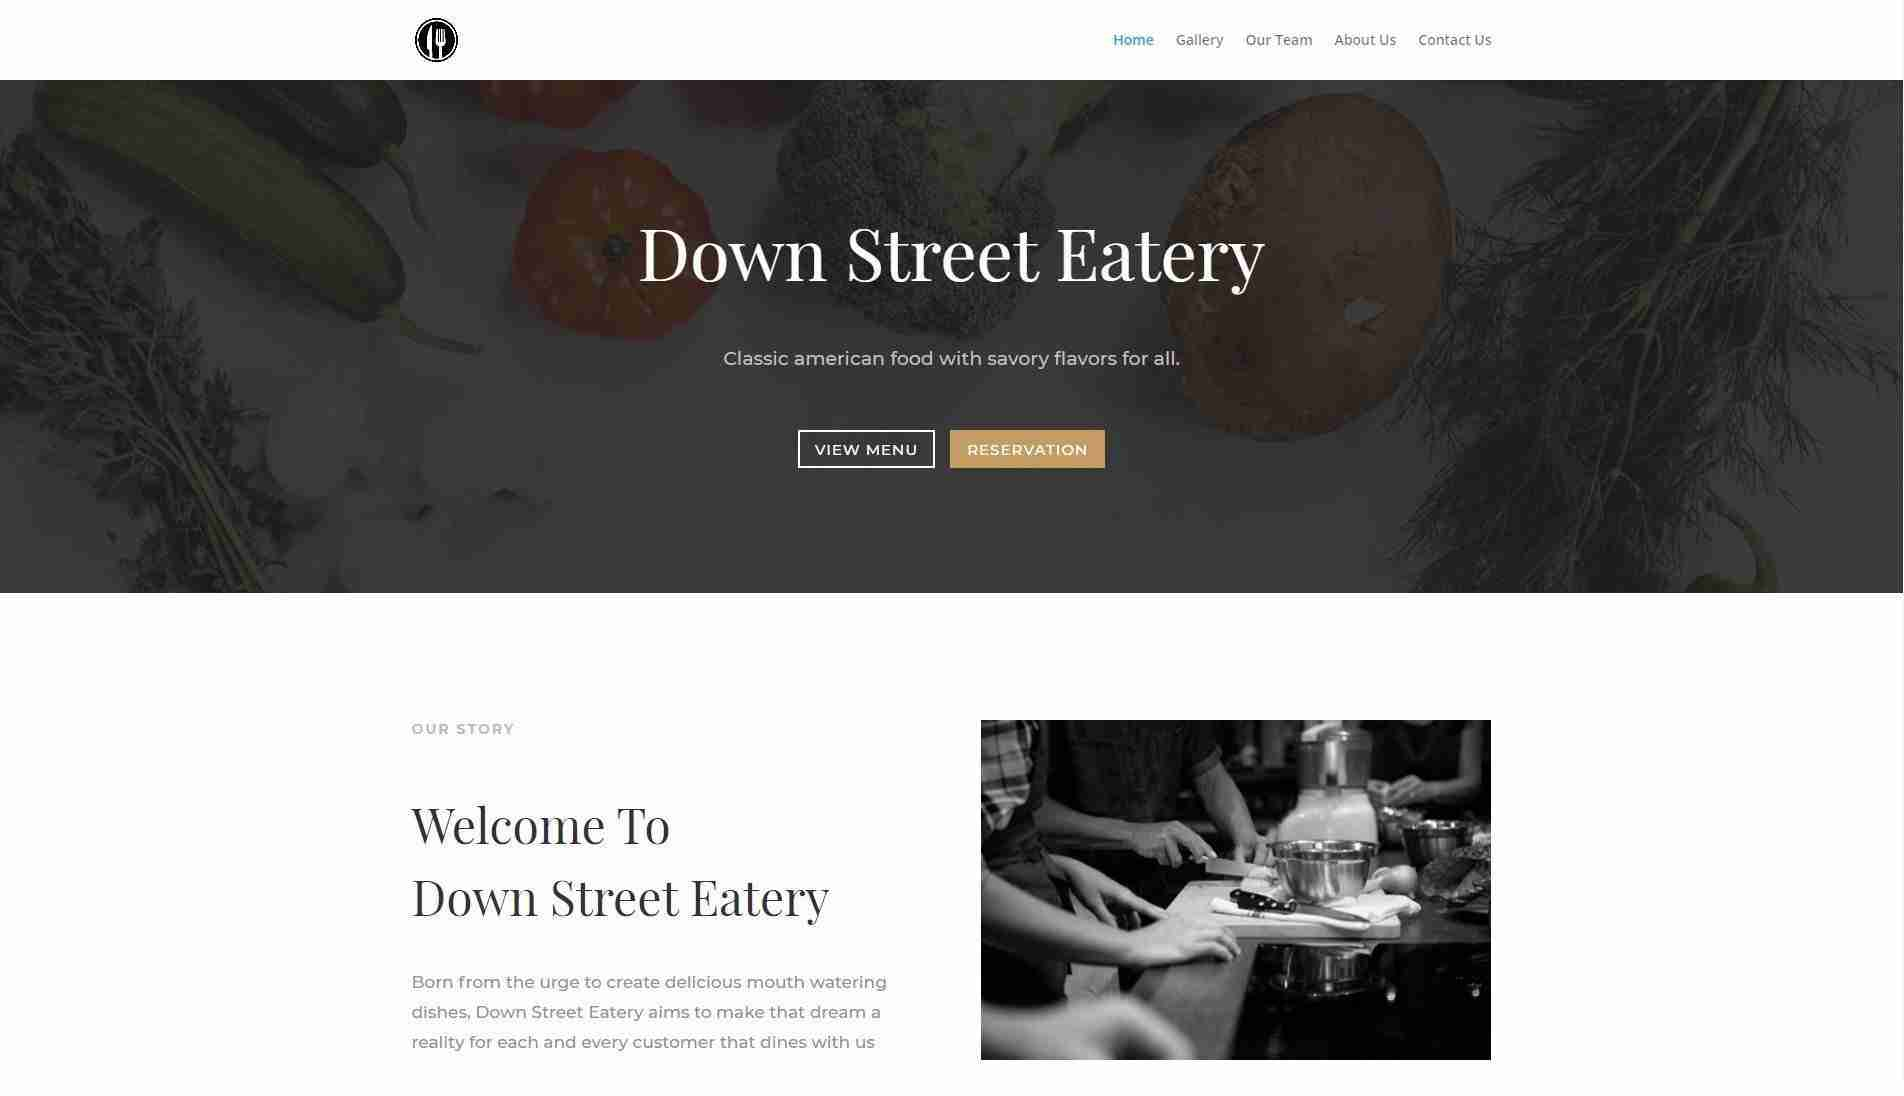 downstreet eatery